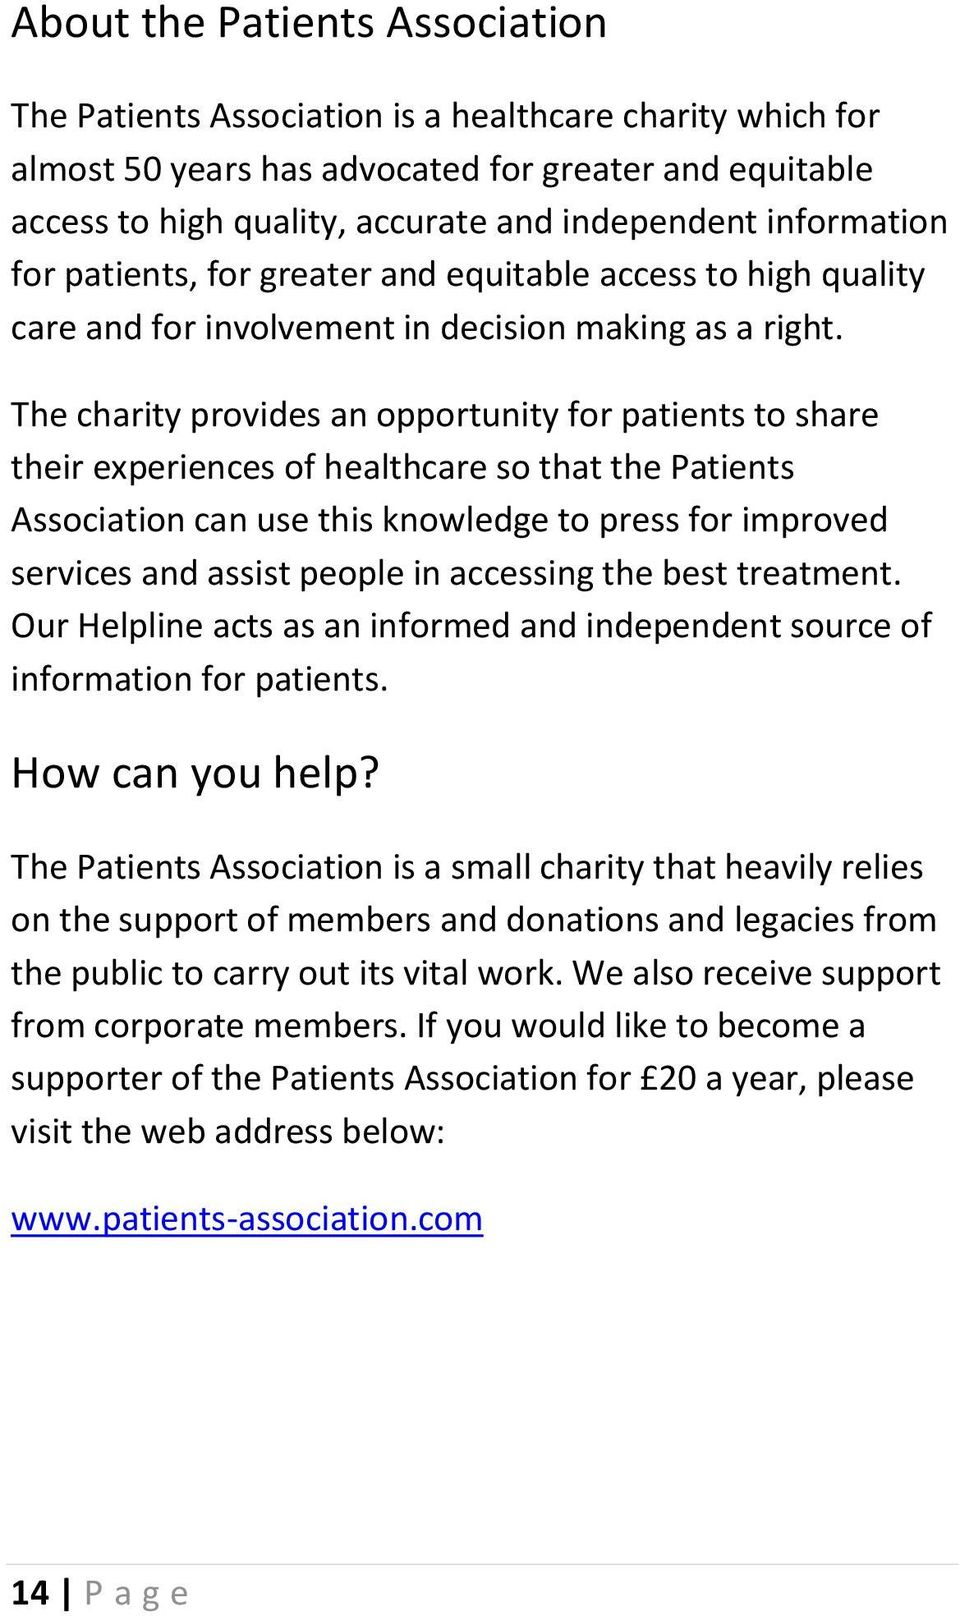 The charity provides an opportunity for patients to share their experiences of healthcare so that the Patients Association can use this knowledge to press for improved services and assist people in